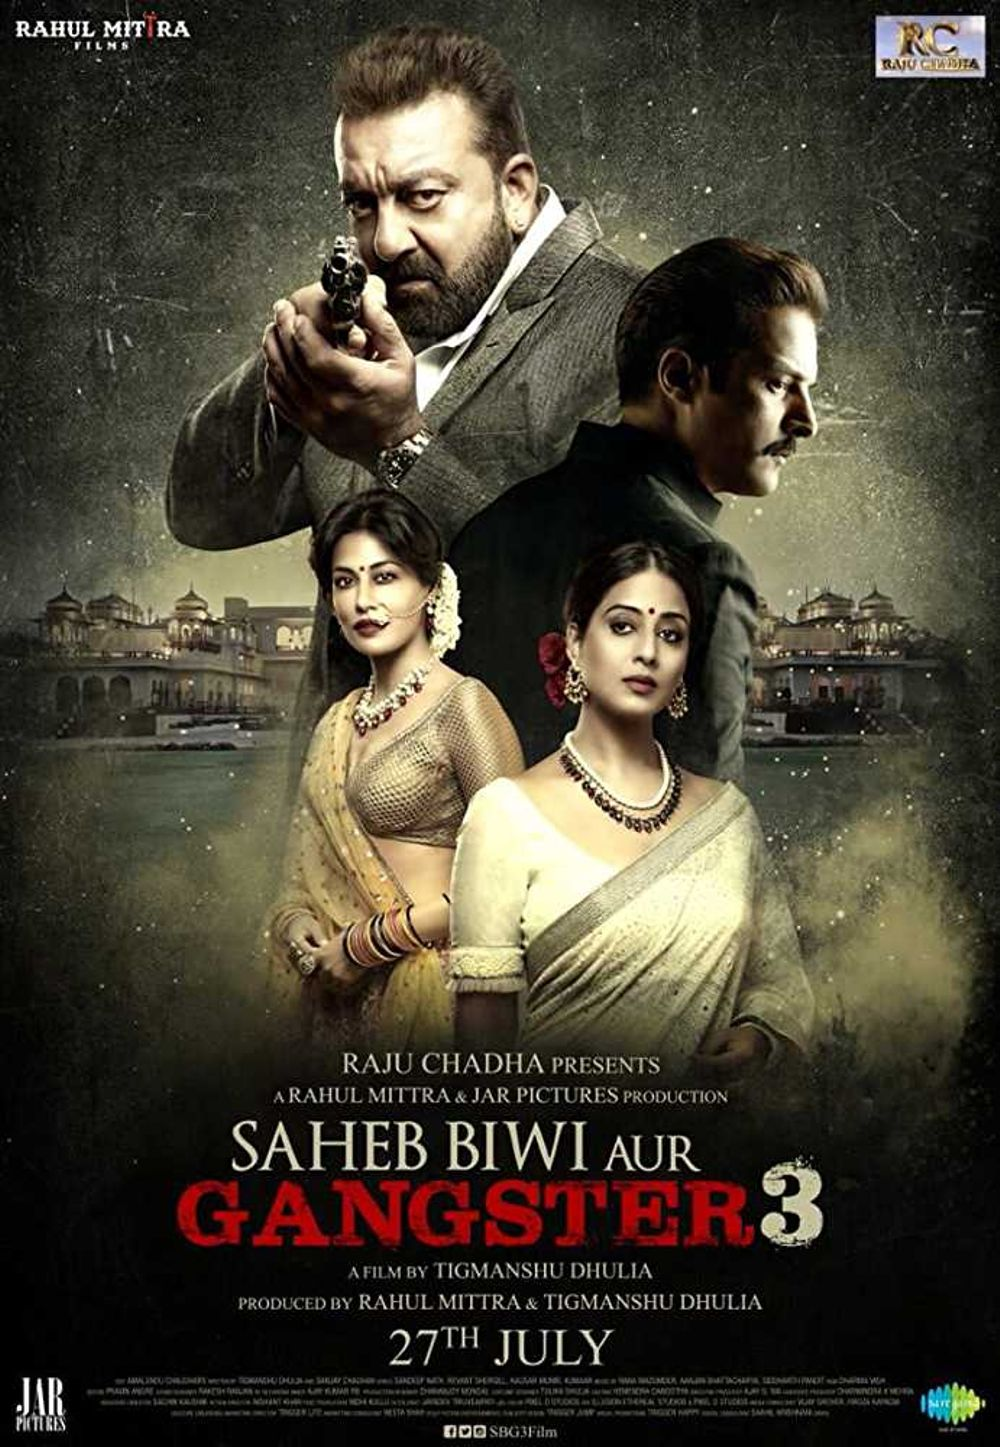 Saheb Biwi Aur Gangster 3 Movie Review